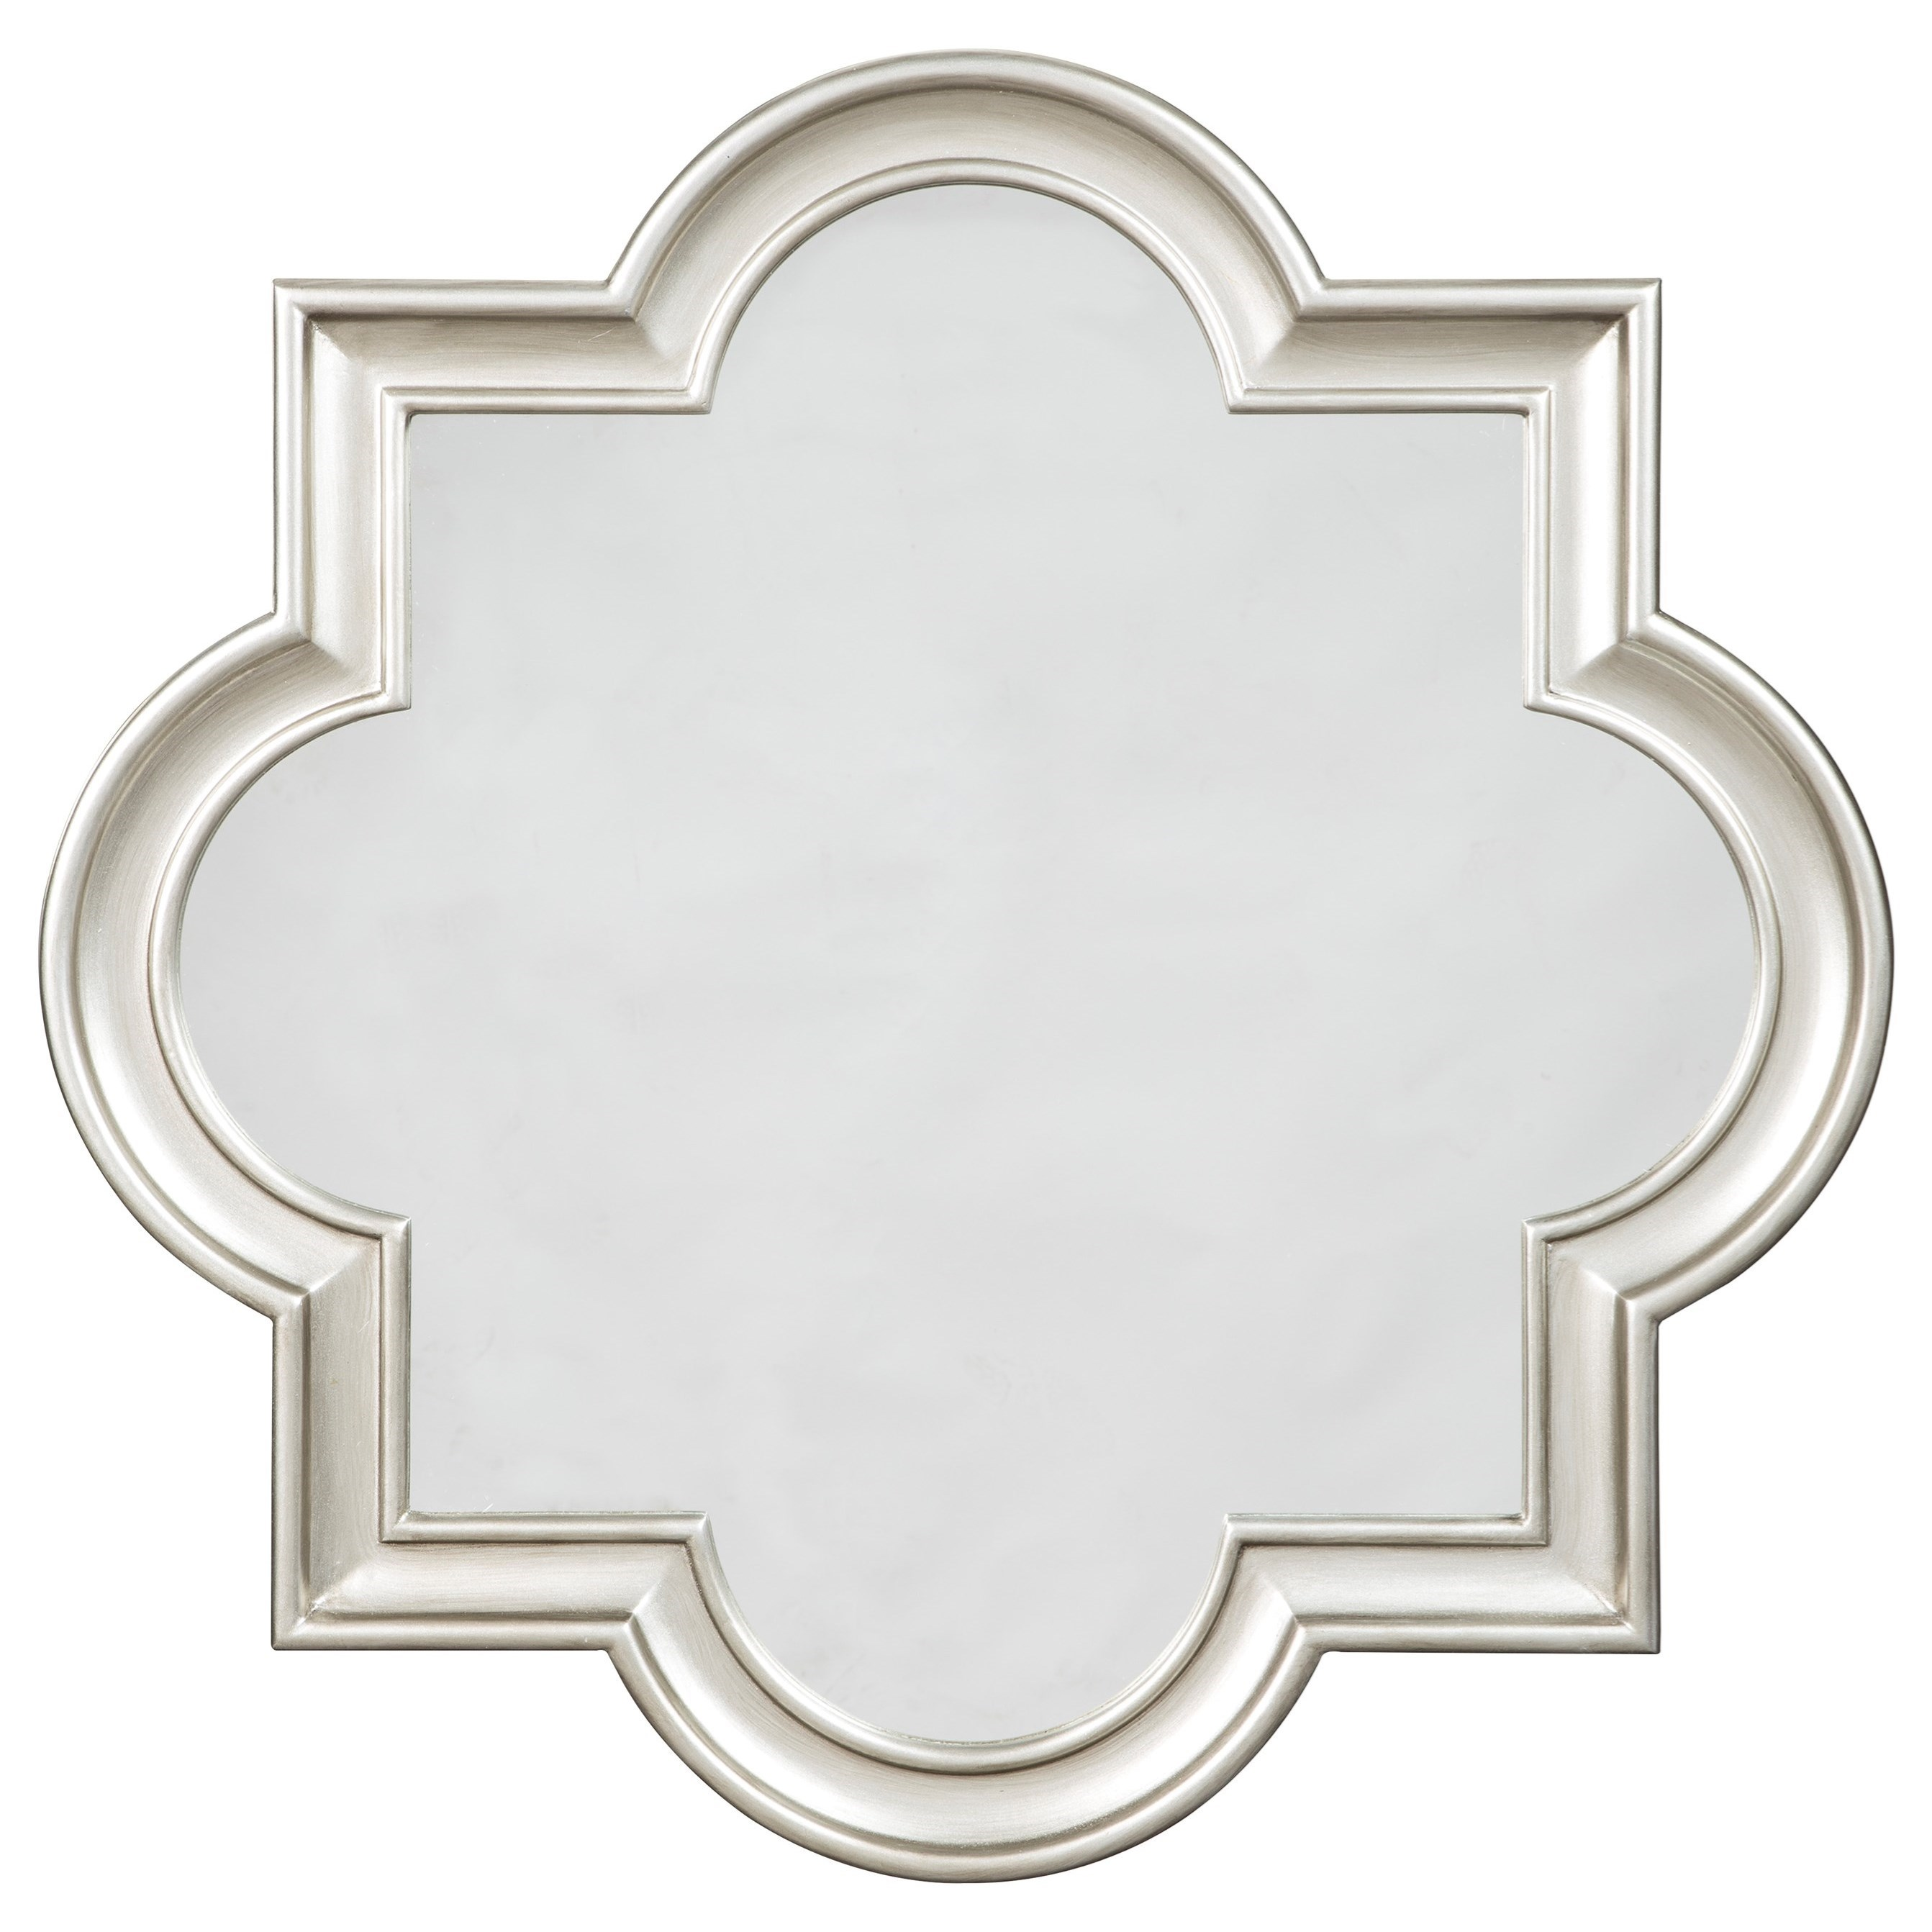 Accent Mirrors Desma Gold Finish Accent Mirror by Signature Design at Fisher Home Furnishings